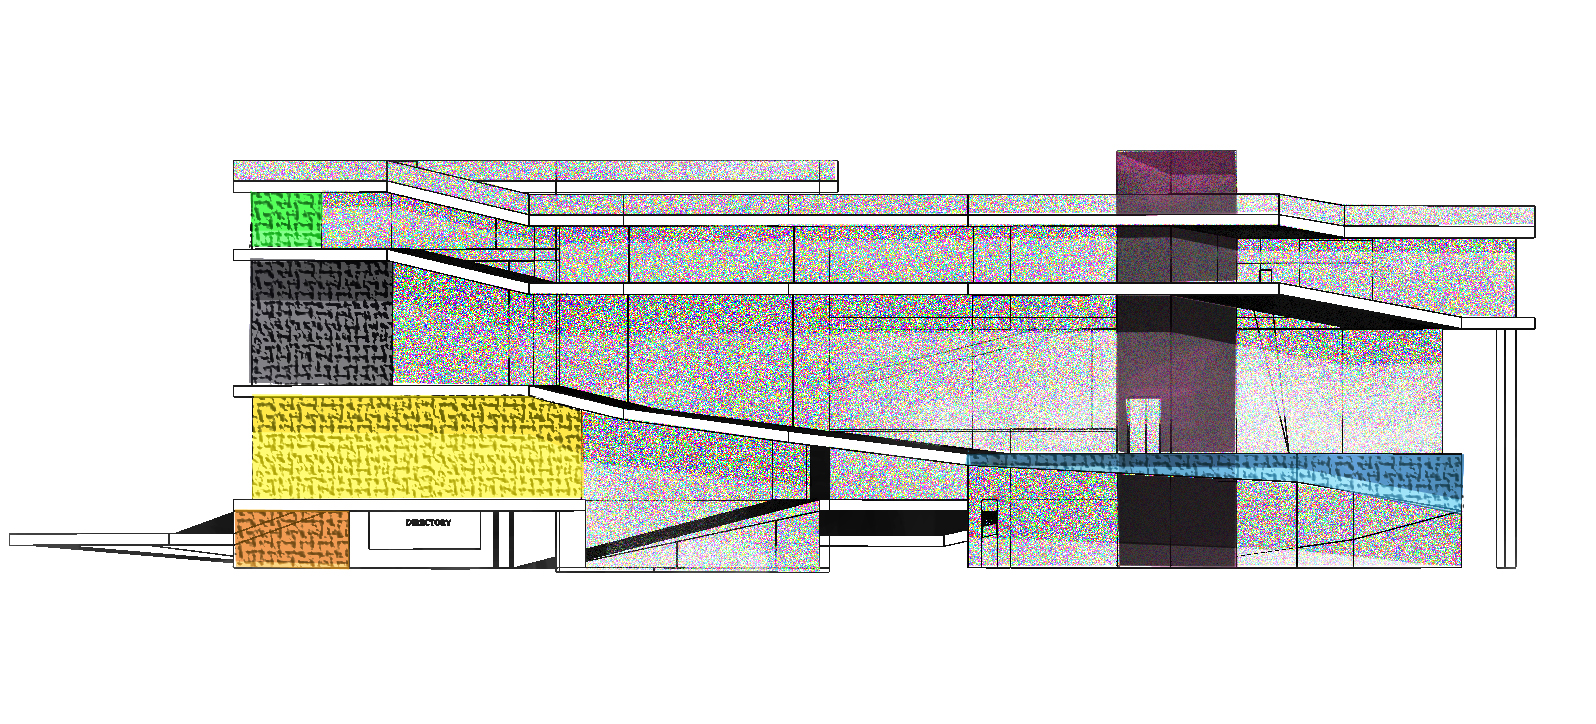 Front Elevation New : Dab d imaging elevations section